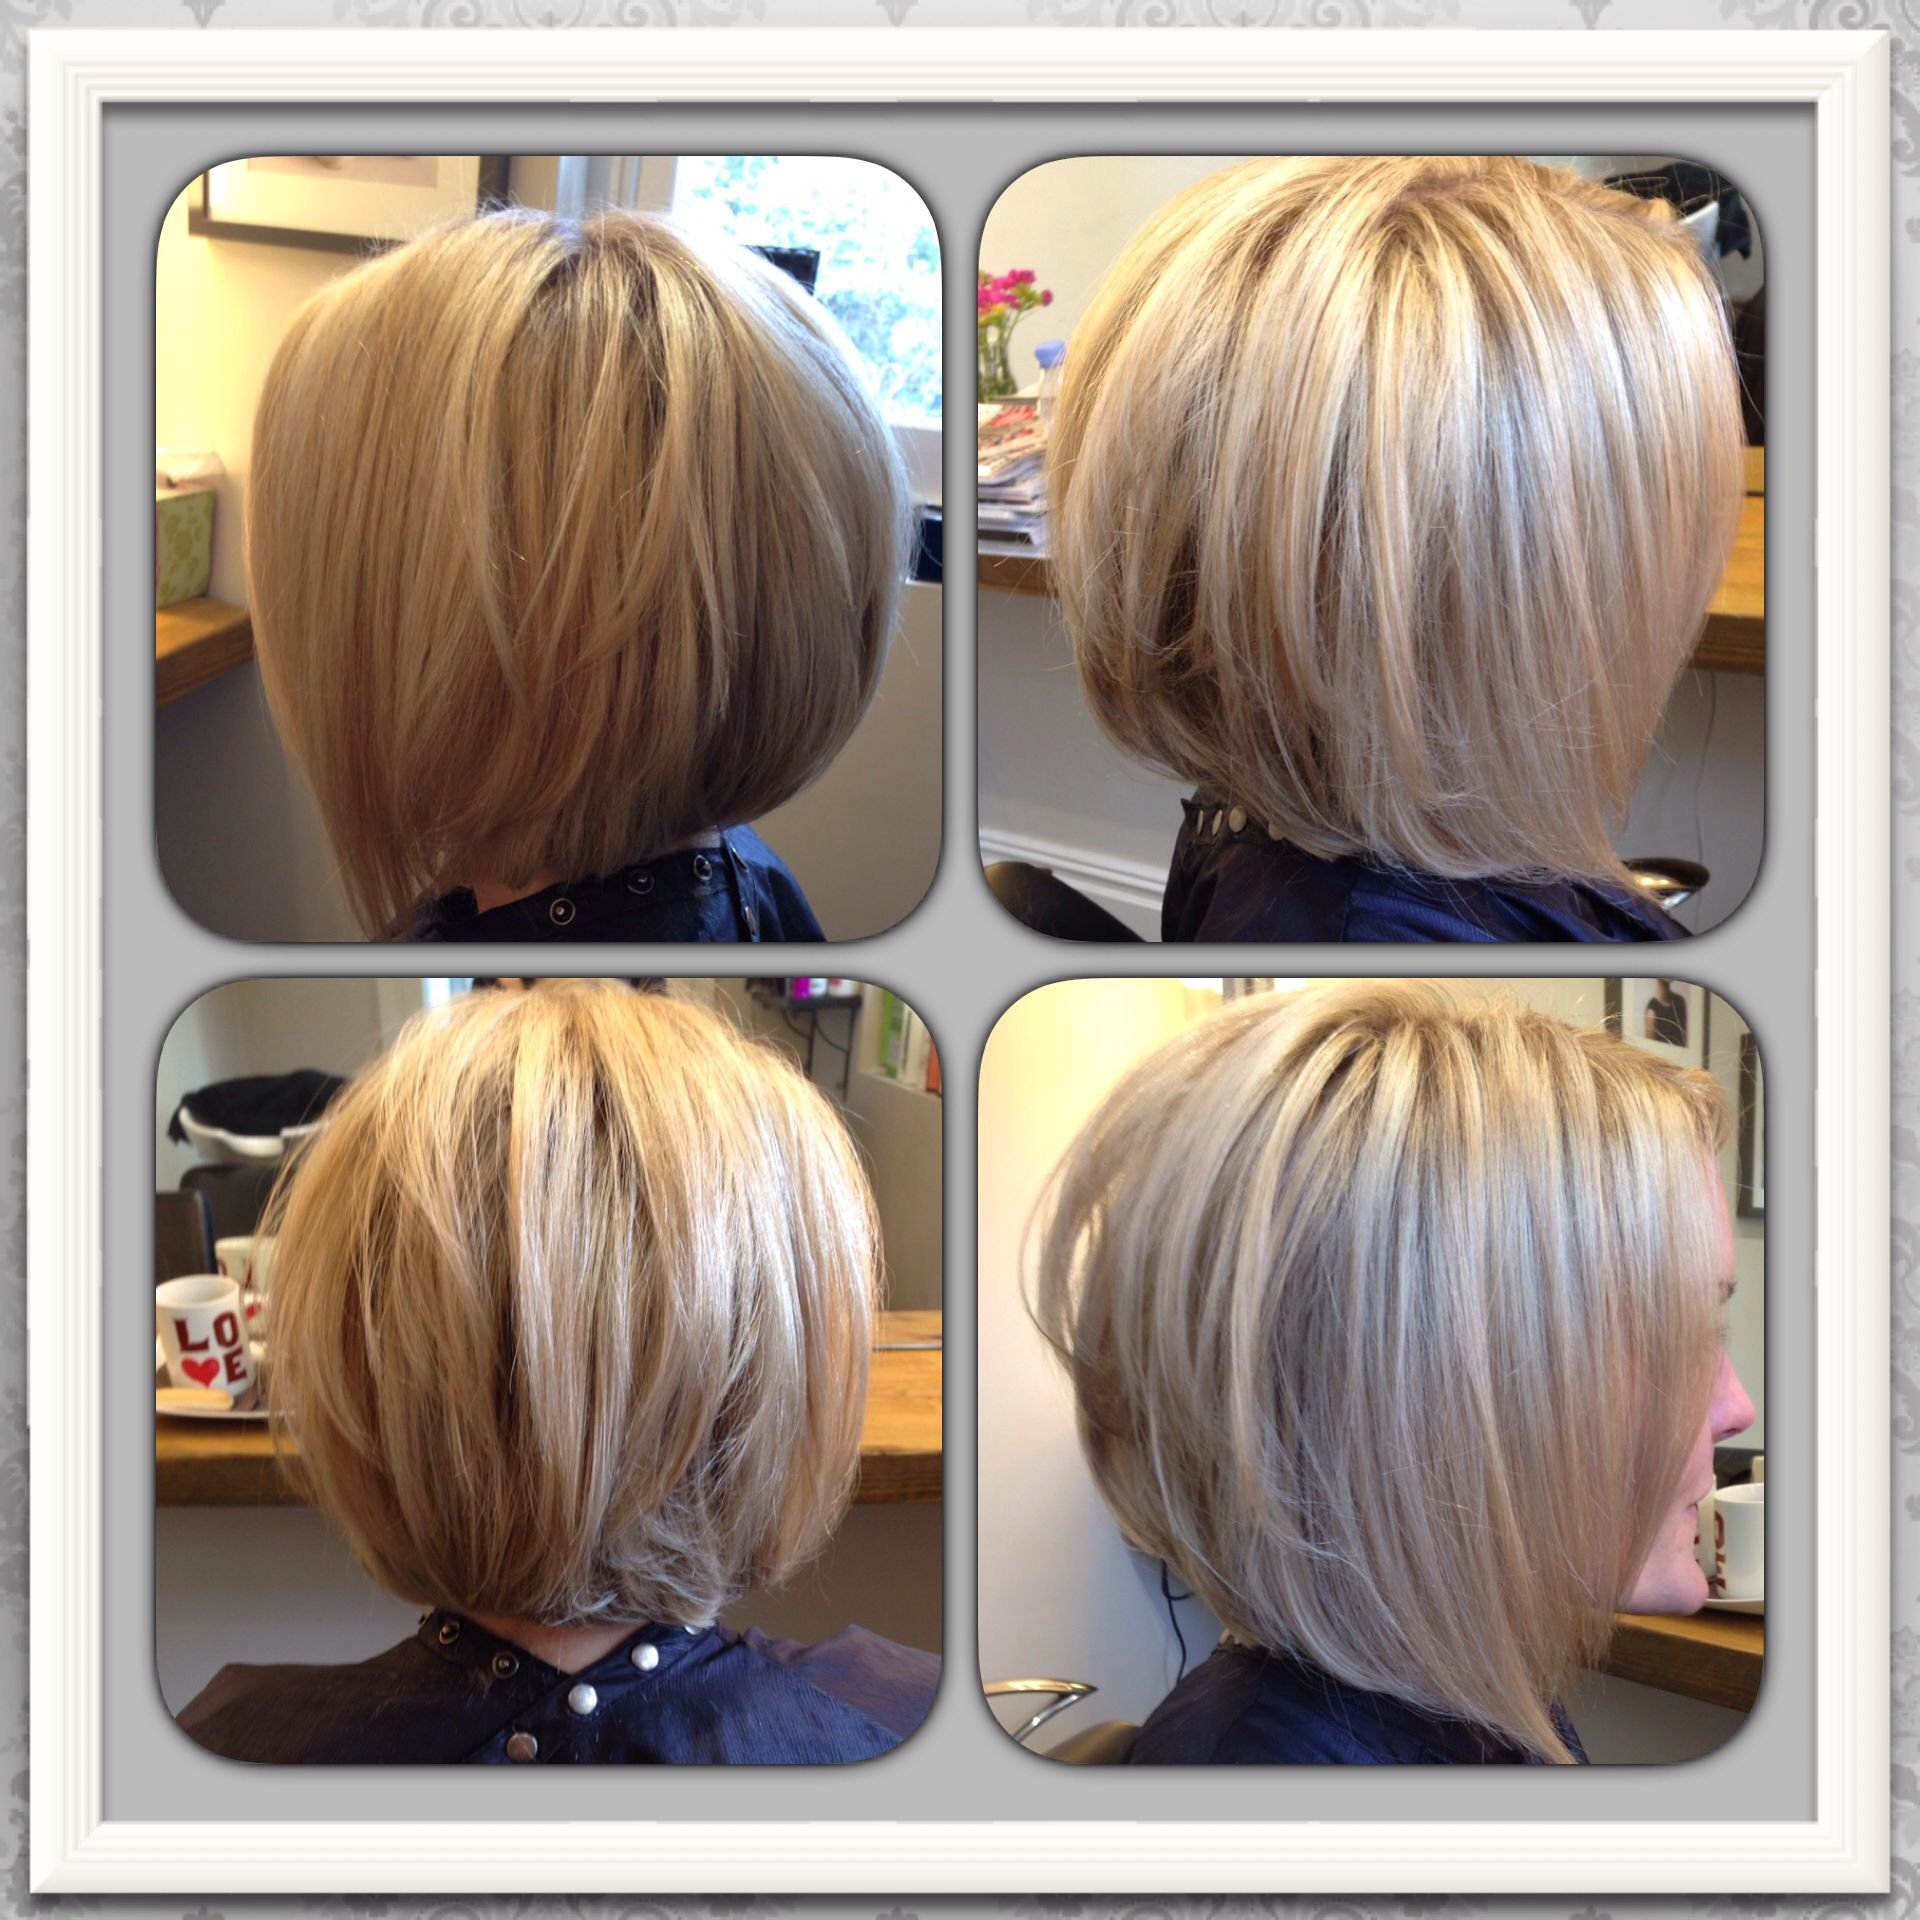 Awesome Love My New Hair Blonde Highlighted Inverted Graduated Bob Hairstyles For Women Draintrainus